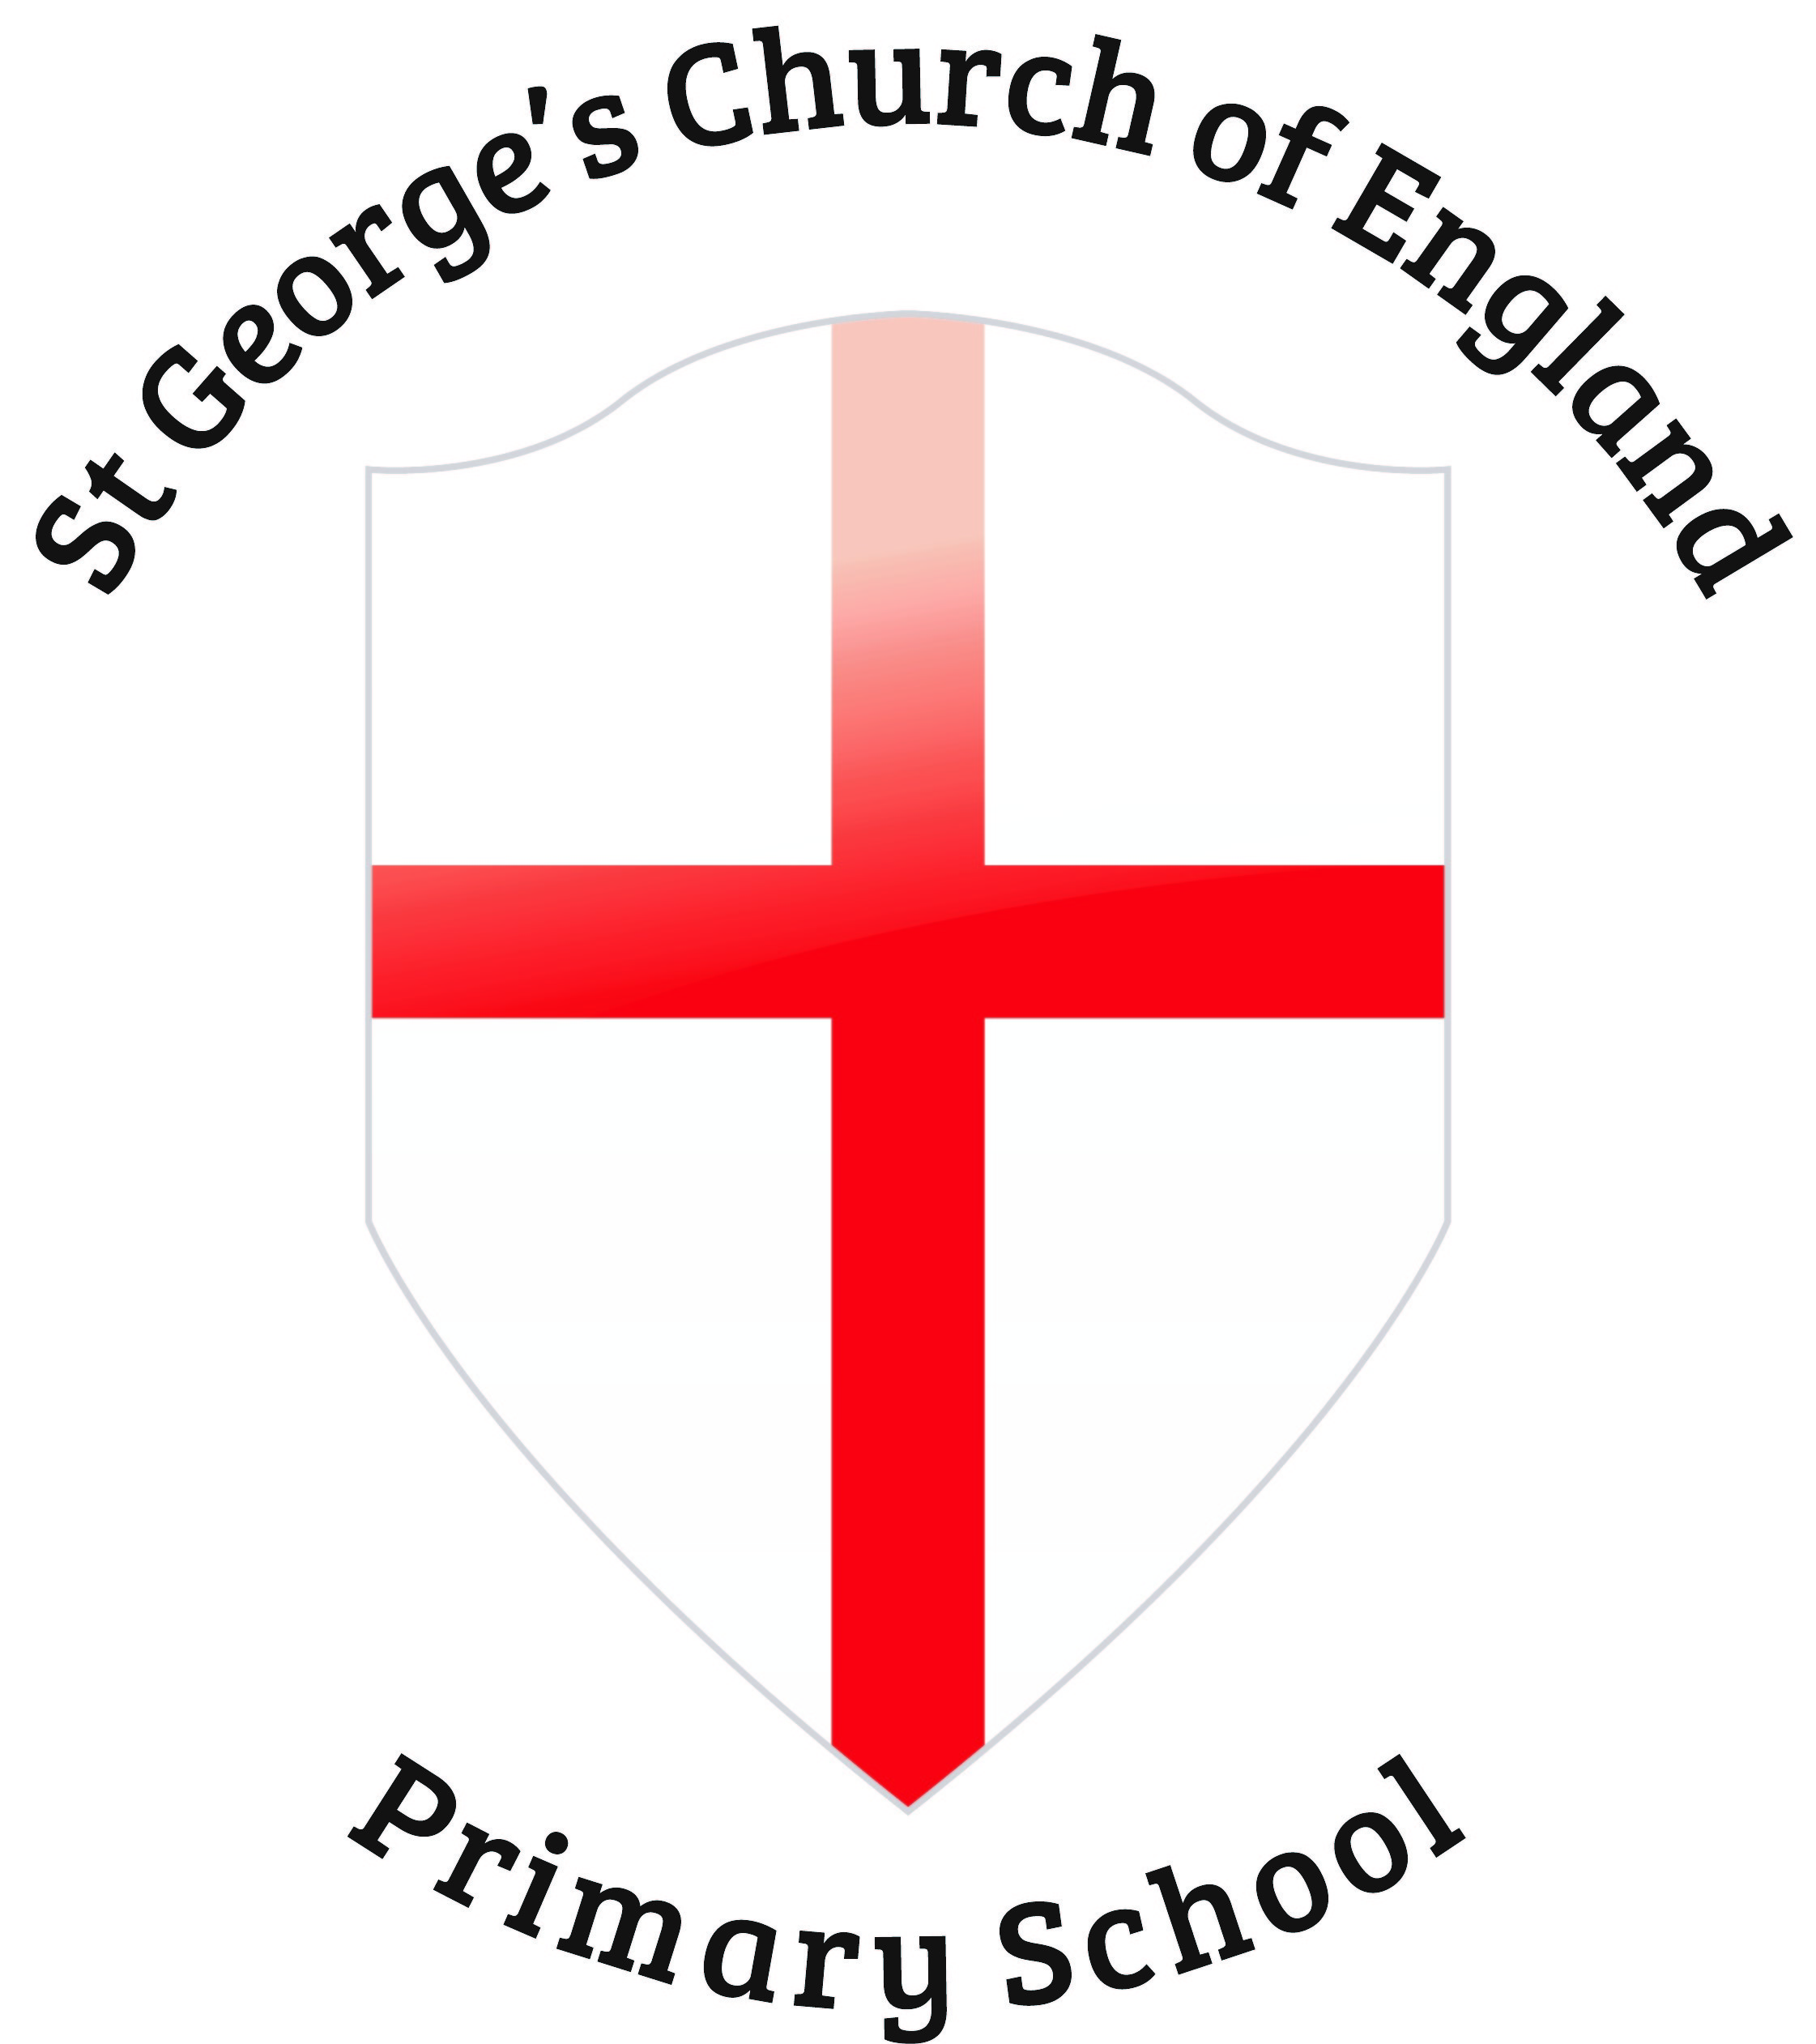 St George's Church of England Primary School